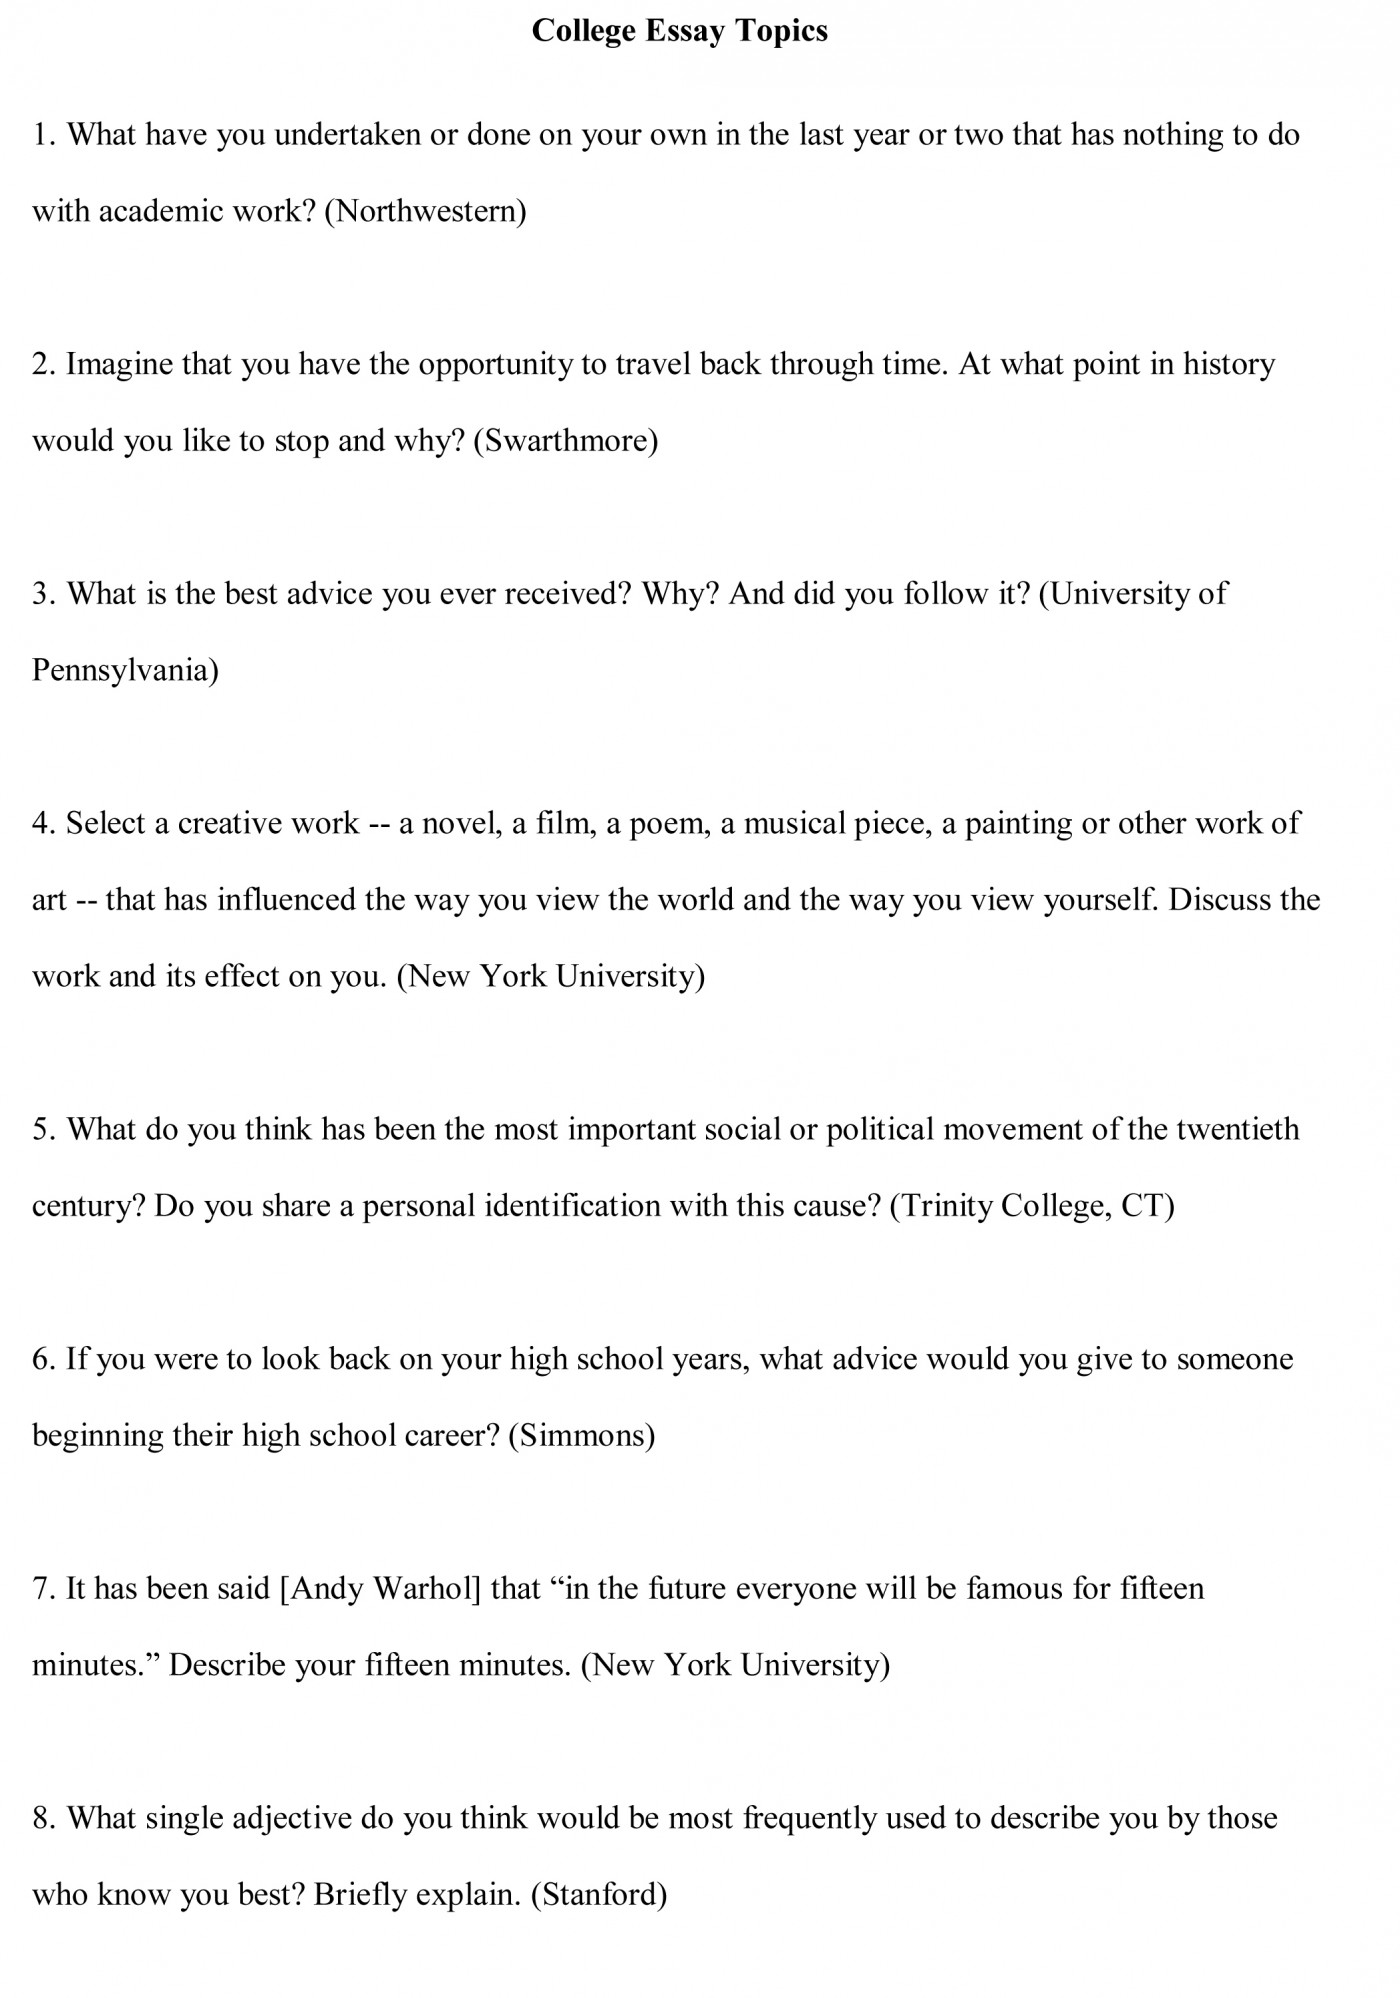 014 Essay Topics College Free Sample1 Archaicawful List For High School Students Freshman 1400